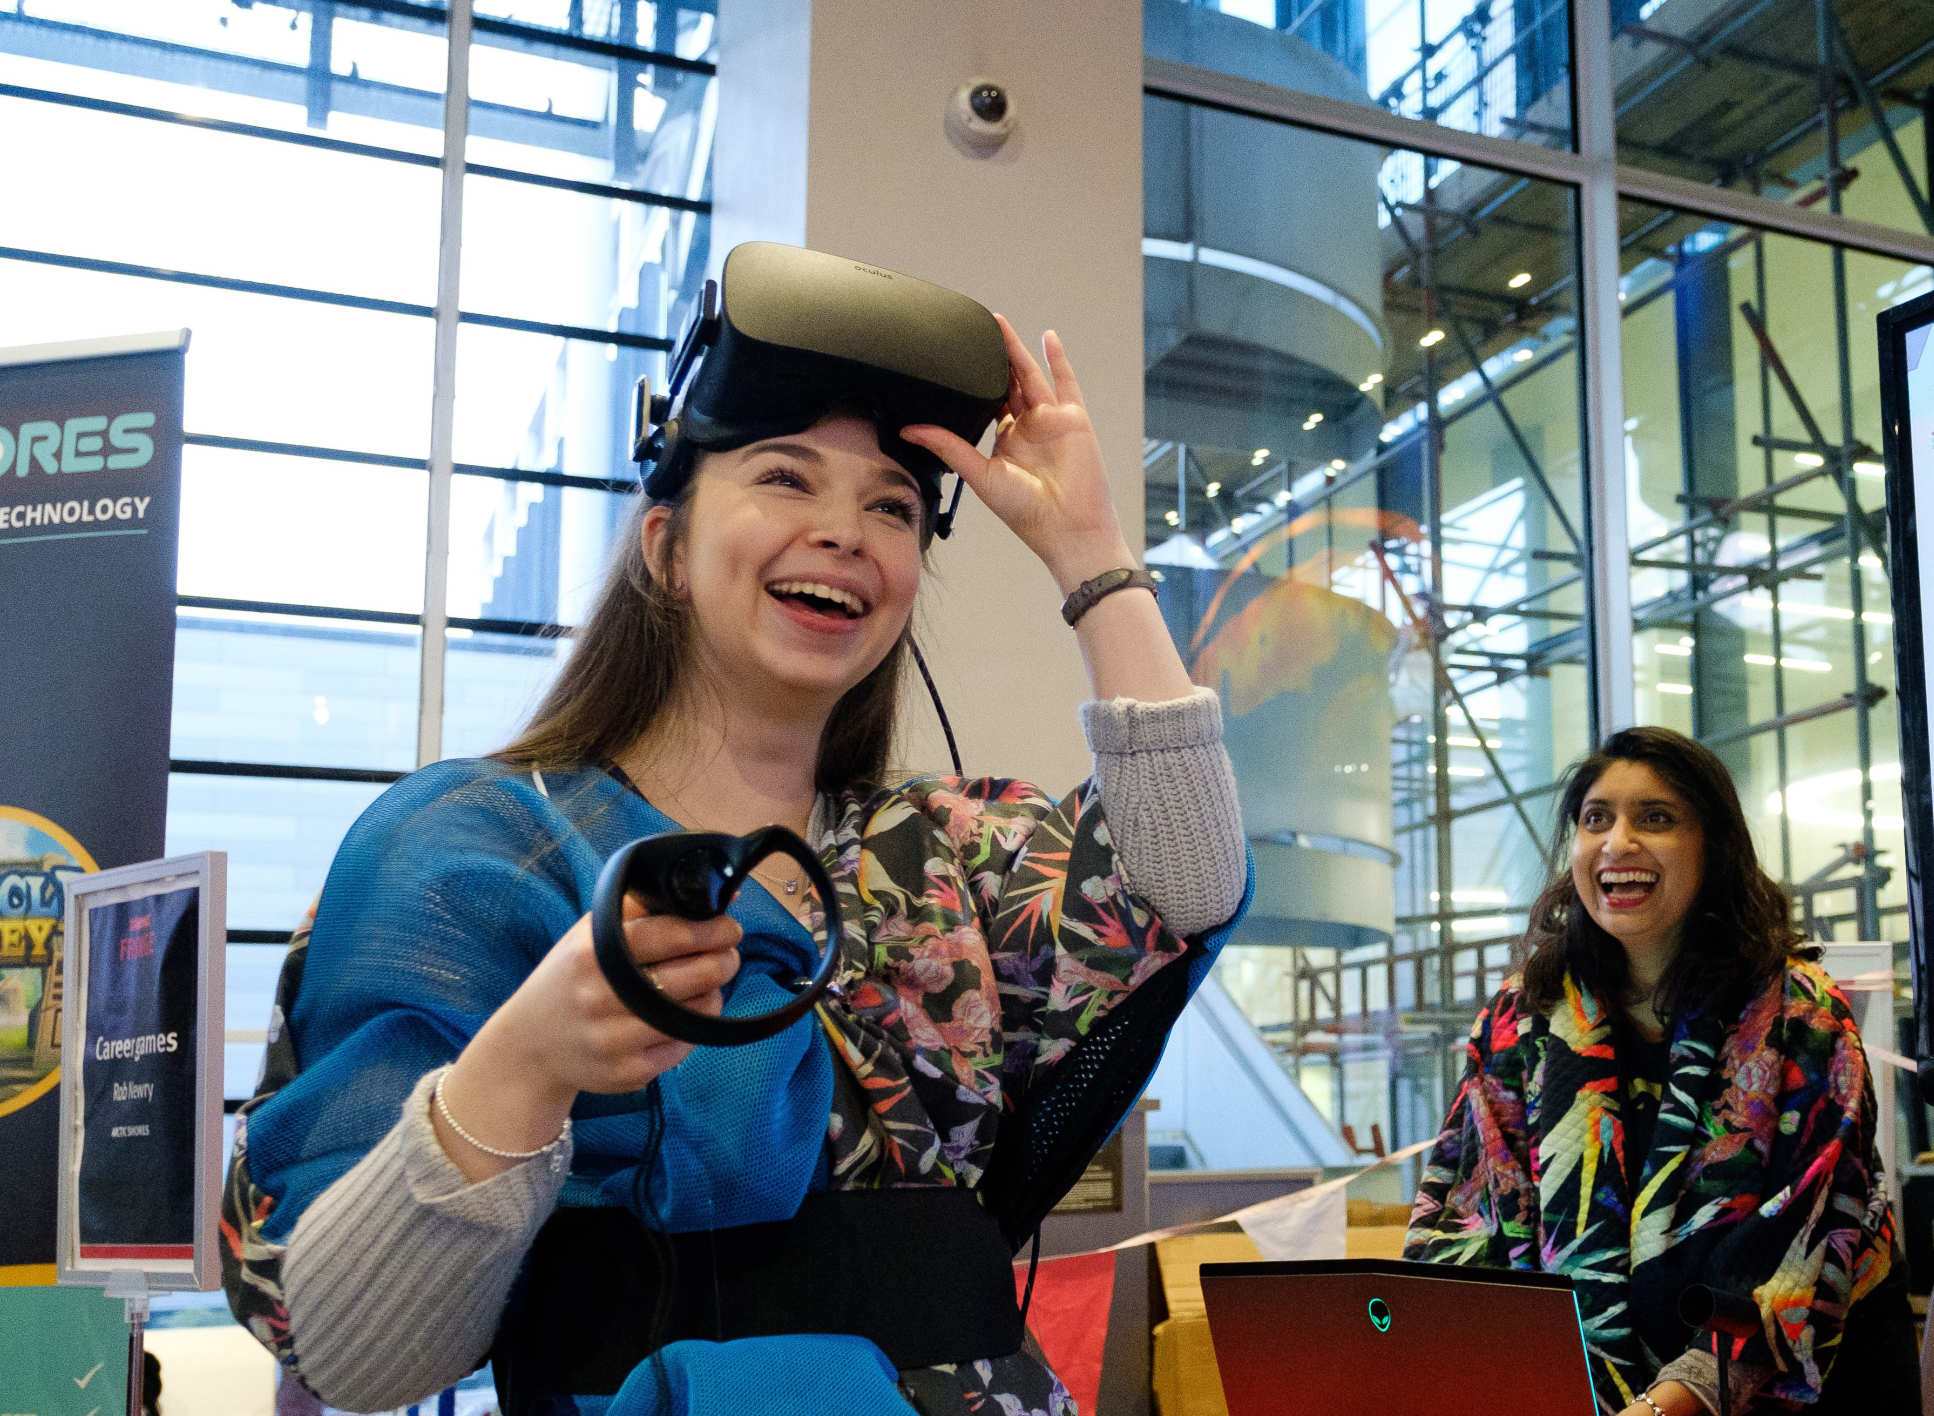 Woman wearing patterned coat and virtual reality headset